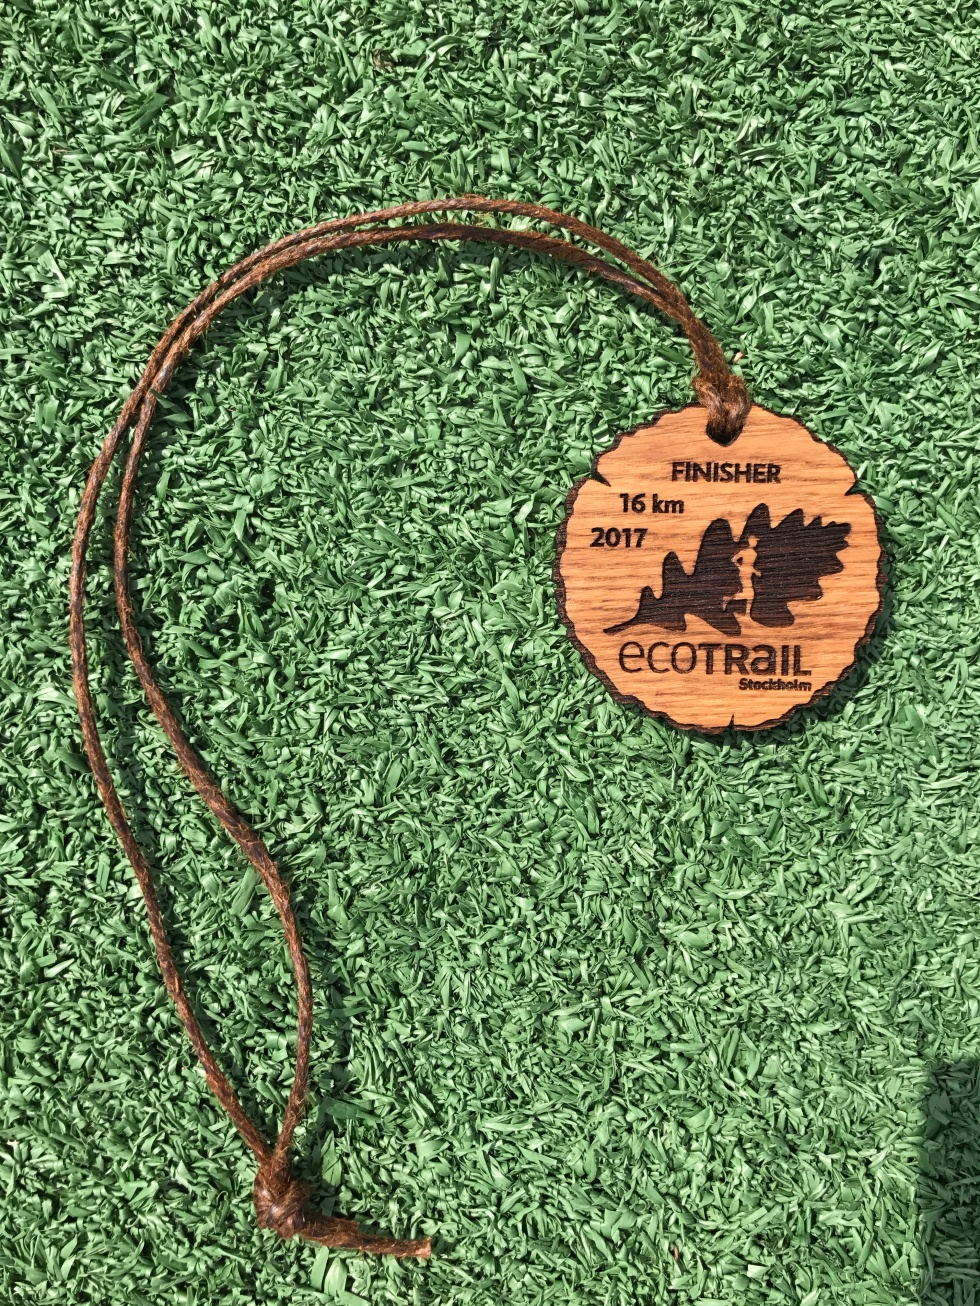 Ecotrail medal